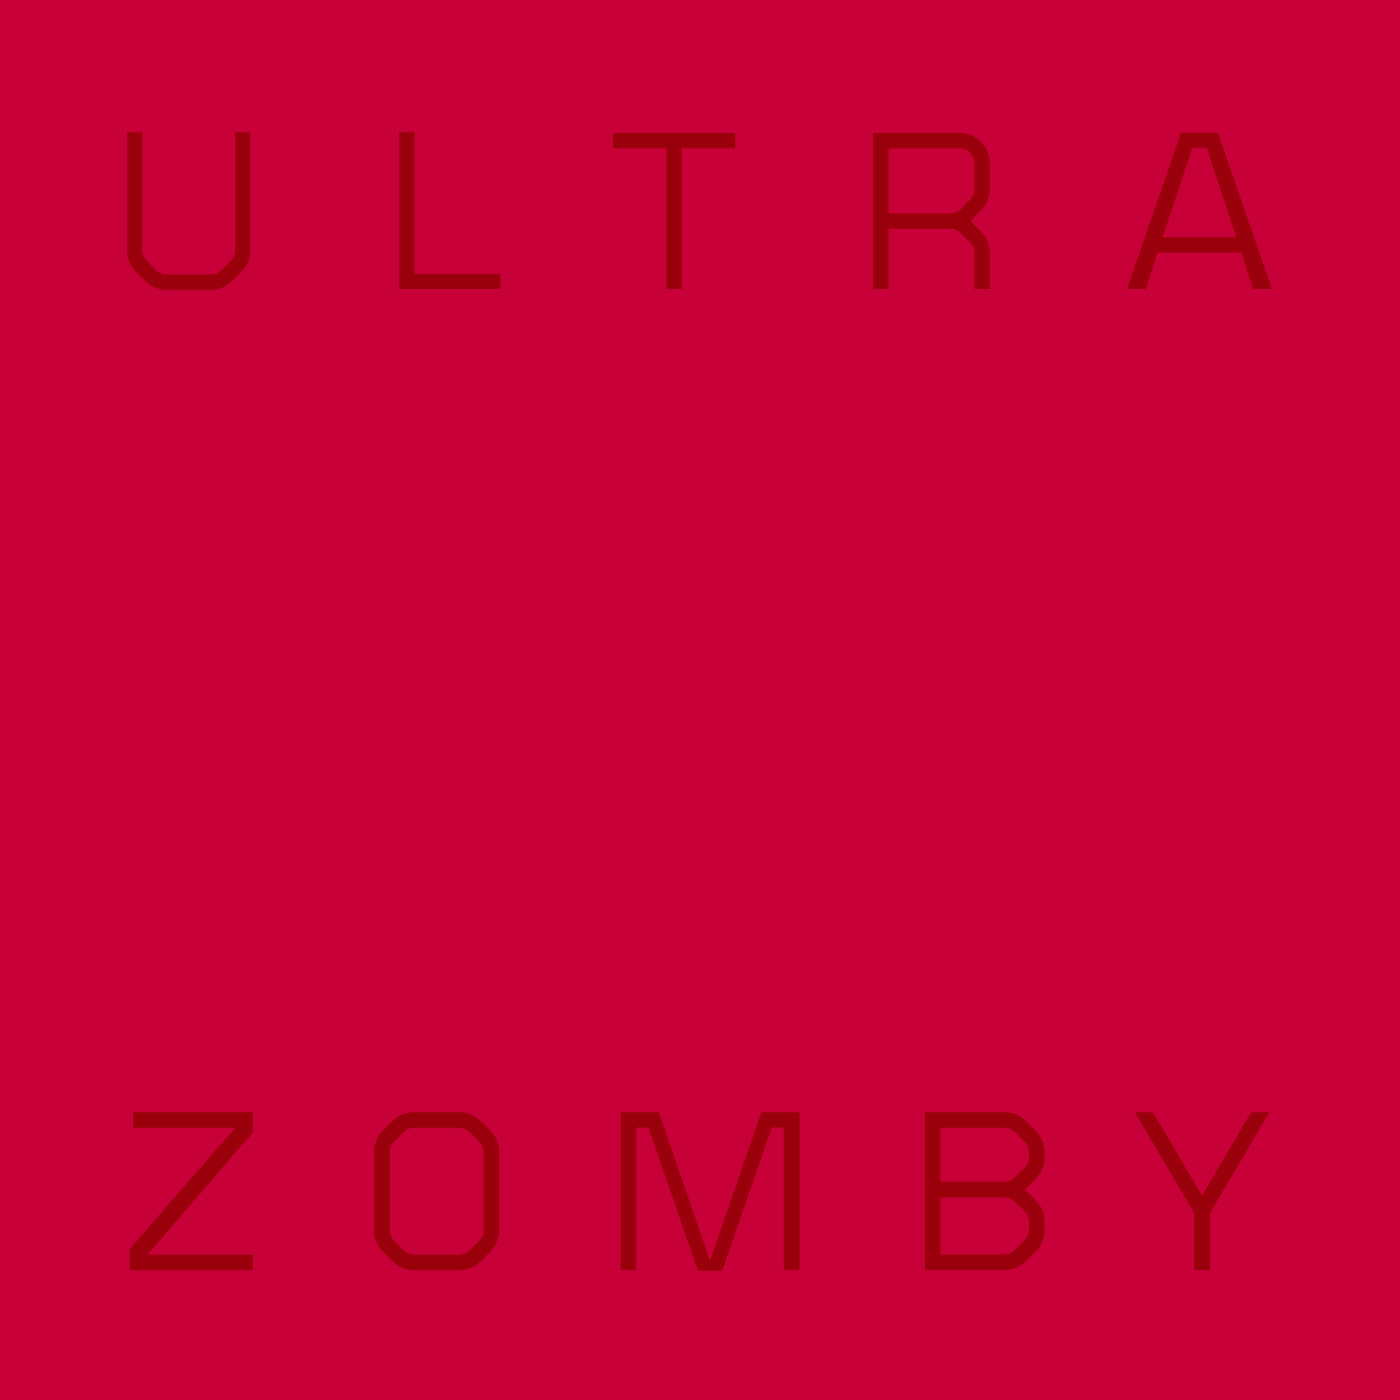 ZOMBY_ULTRA_FRONT